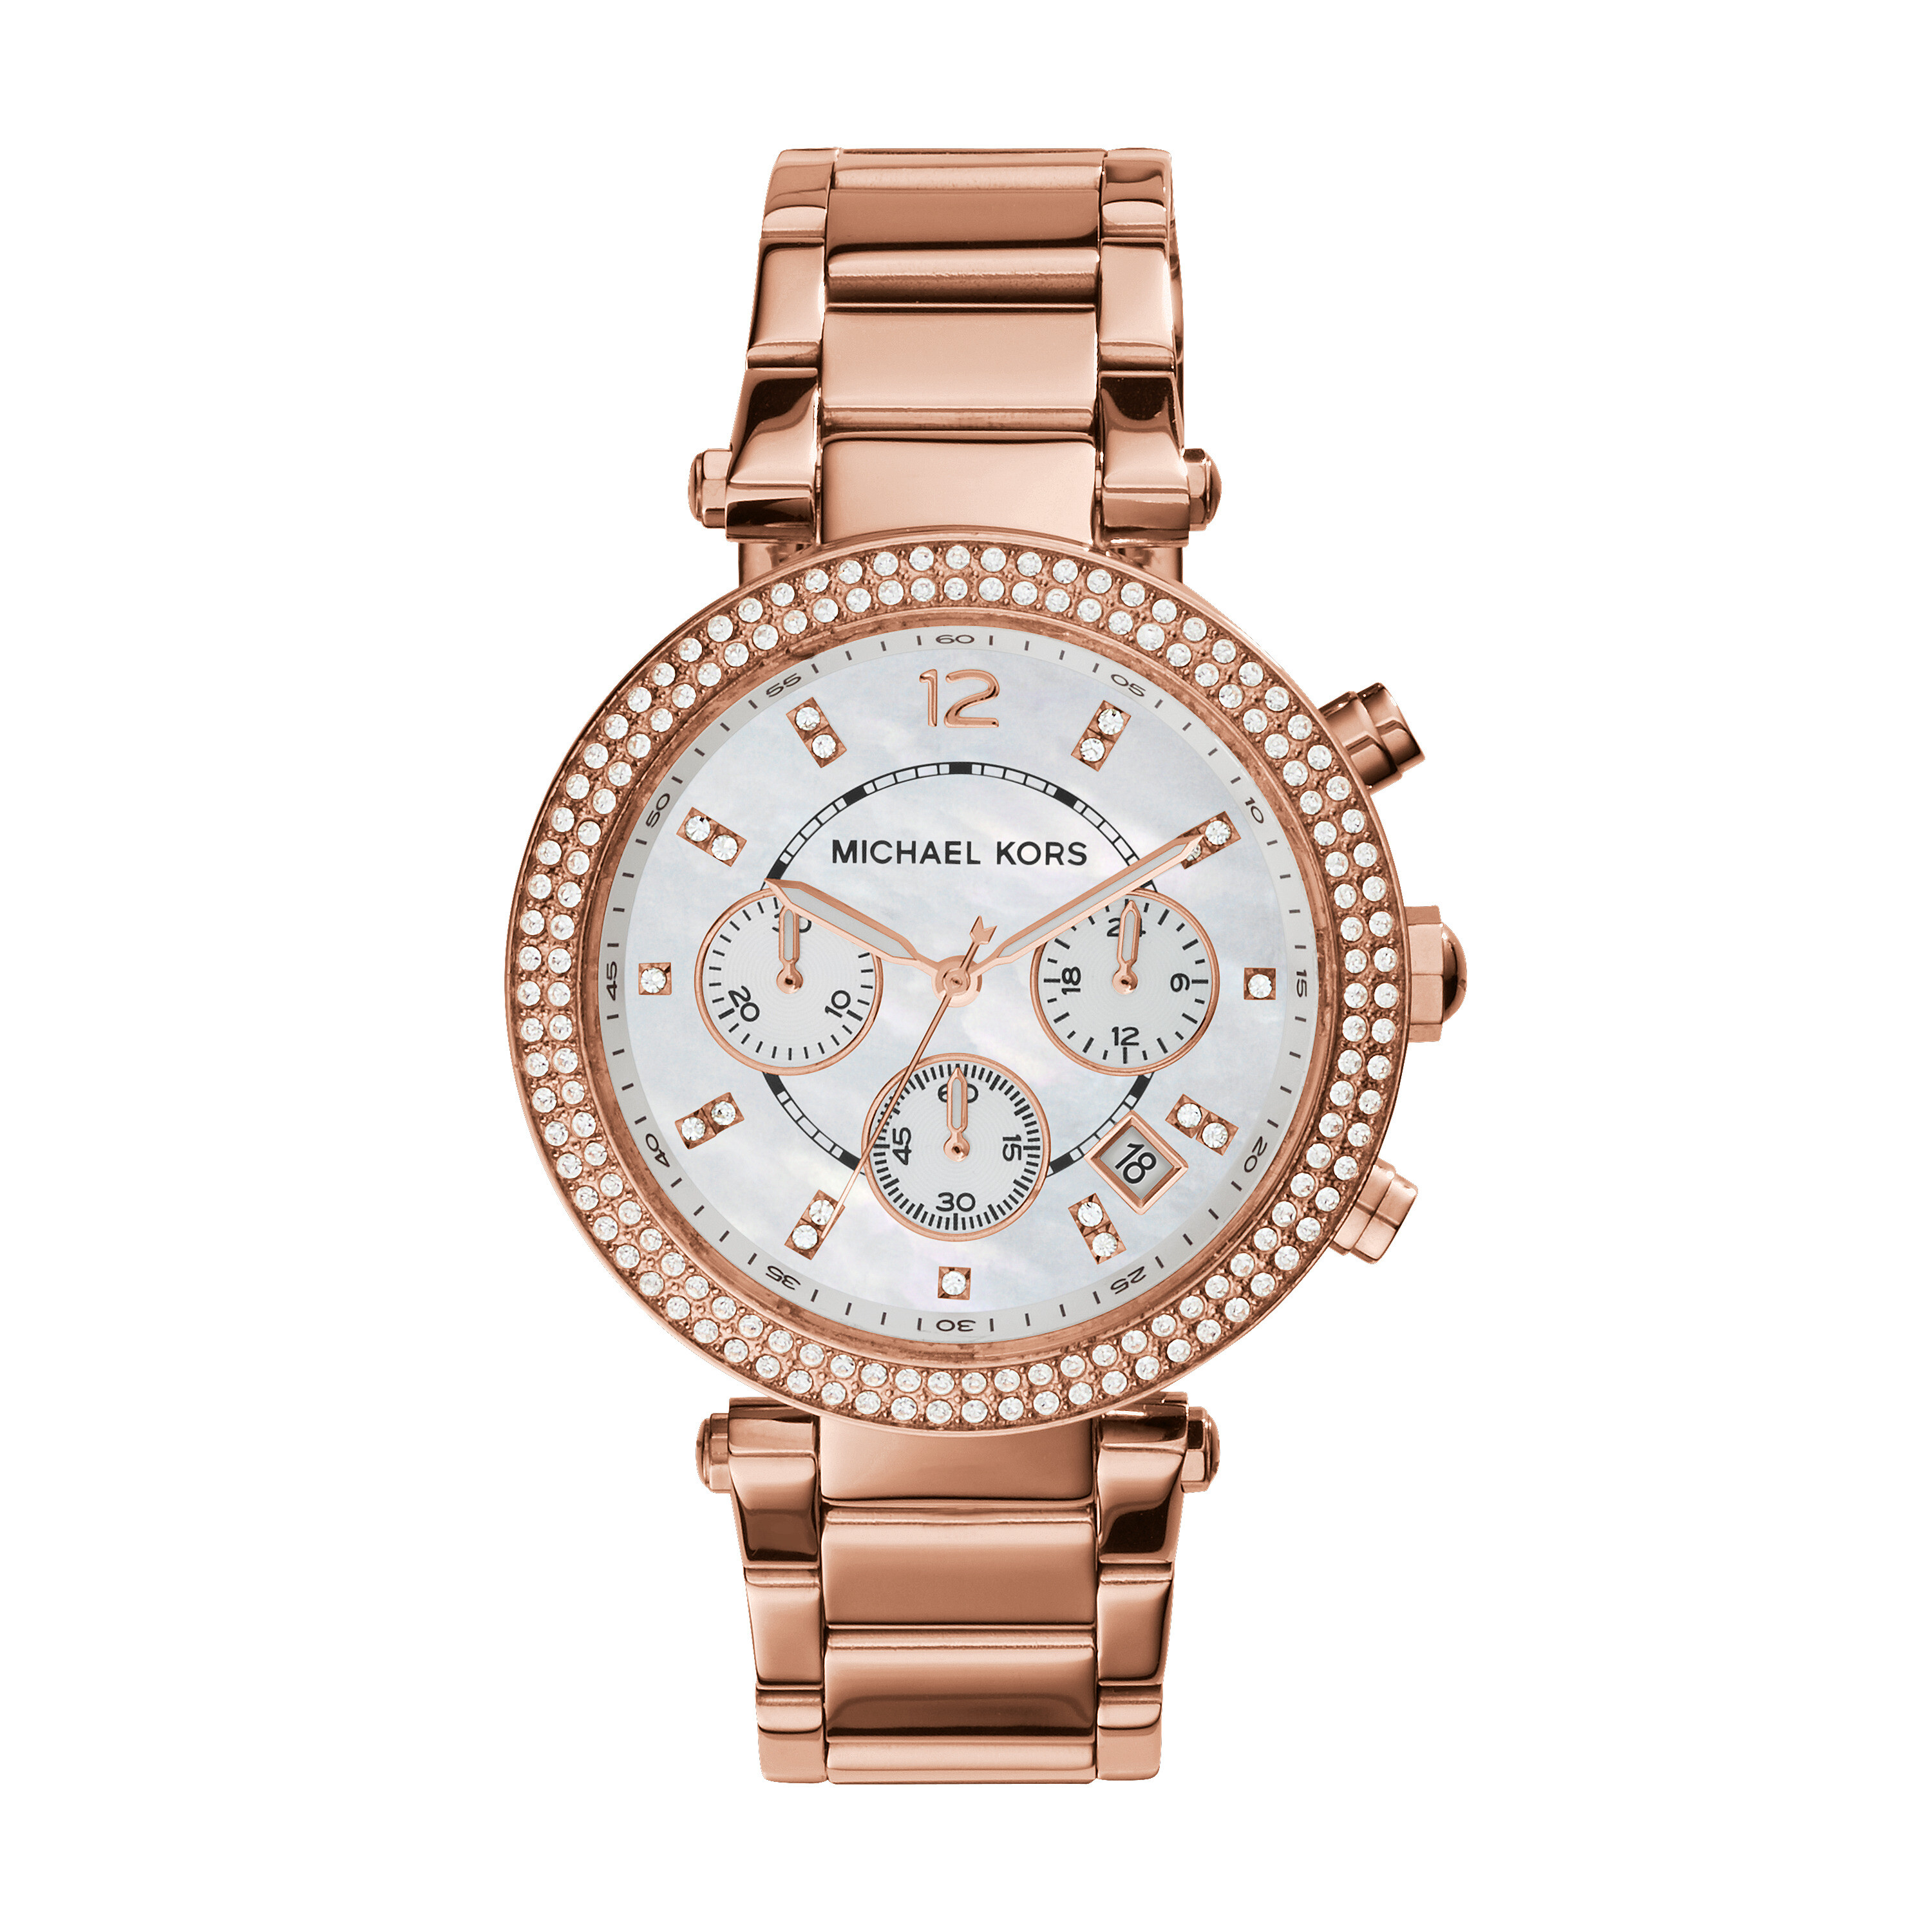 Michael Kors MK5491 - Parker Chronograph - Rose Gold IP